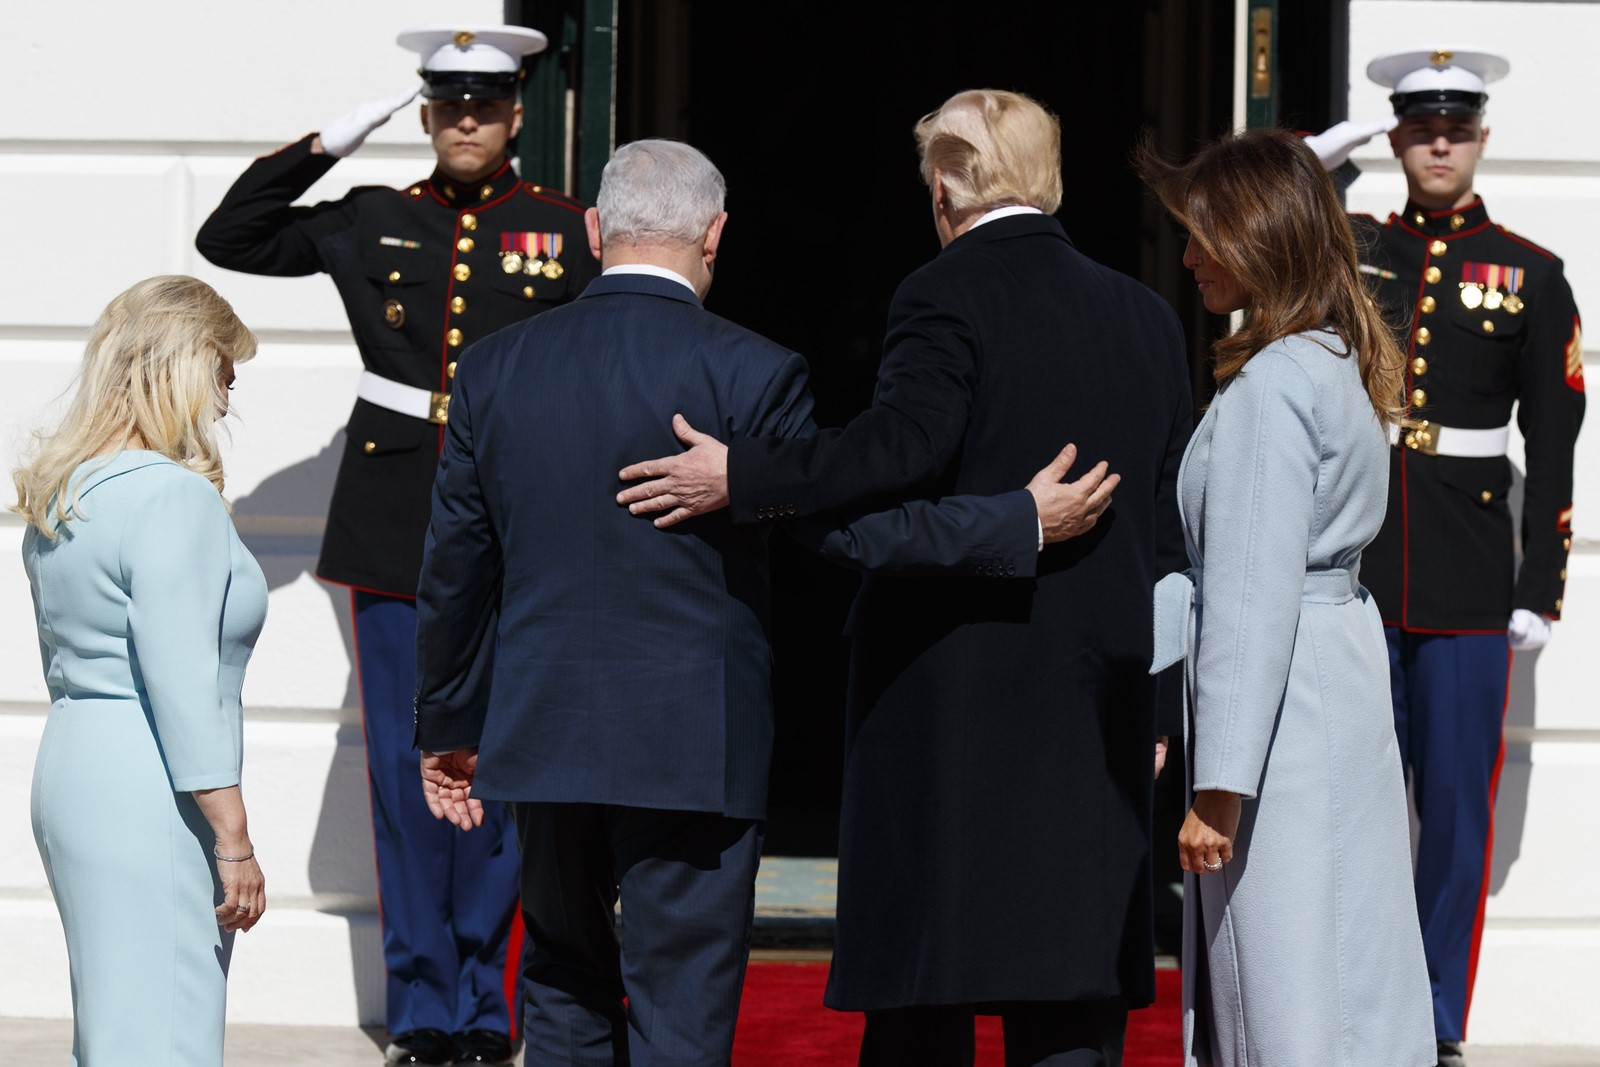 Israeli Prime Minister Benjamin Netanyahu and President Donald J. Trump with Sara Netanyahu, far left, and Melania Trump. Both men could get a political boost from the visit, at least with their political bases. — Photograph: Evan Vucci/Associated Press.